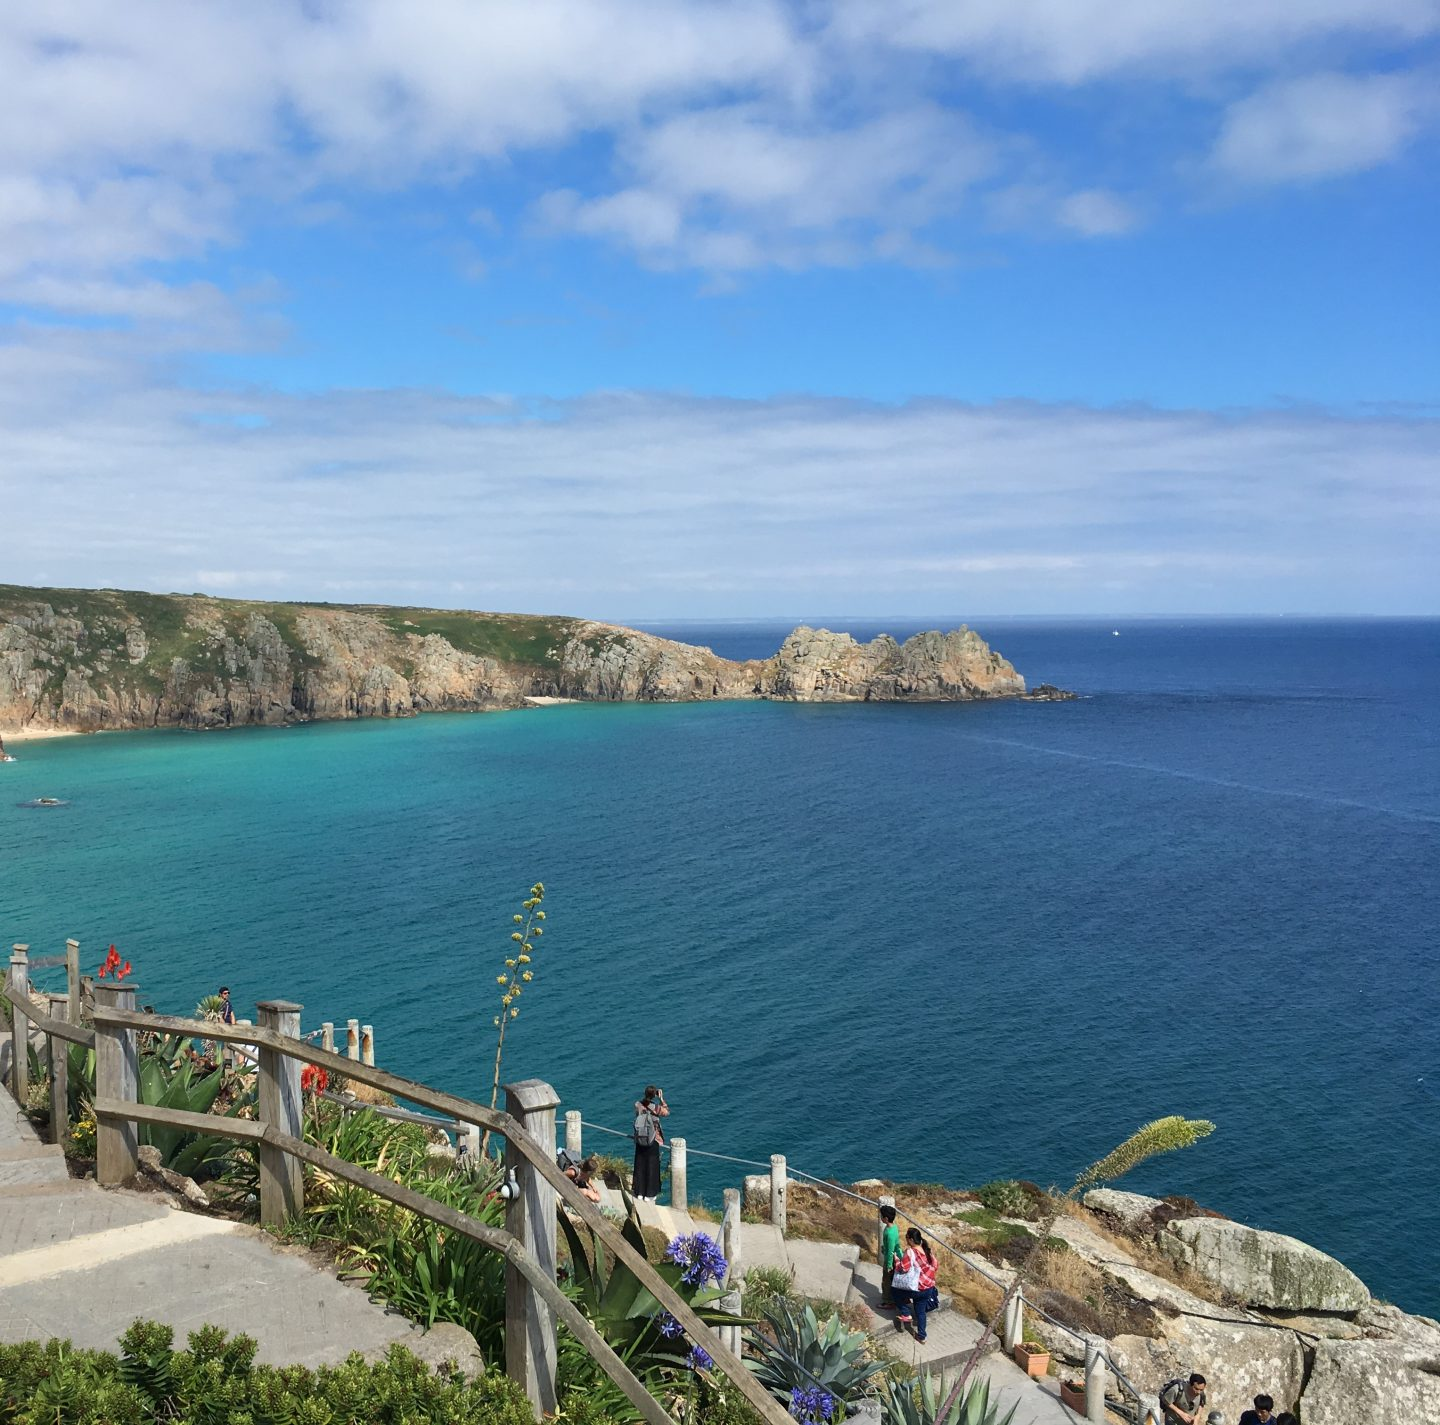 The coastline near Porthcurno viewed from the Minack Theatre, Cornwall